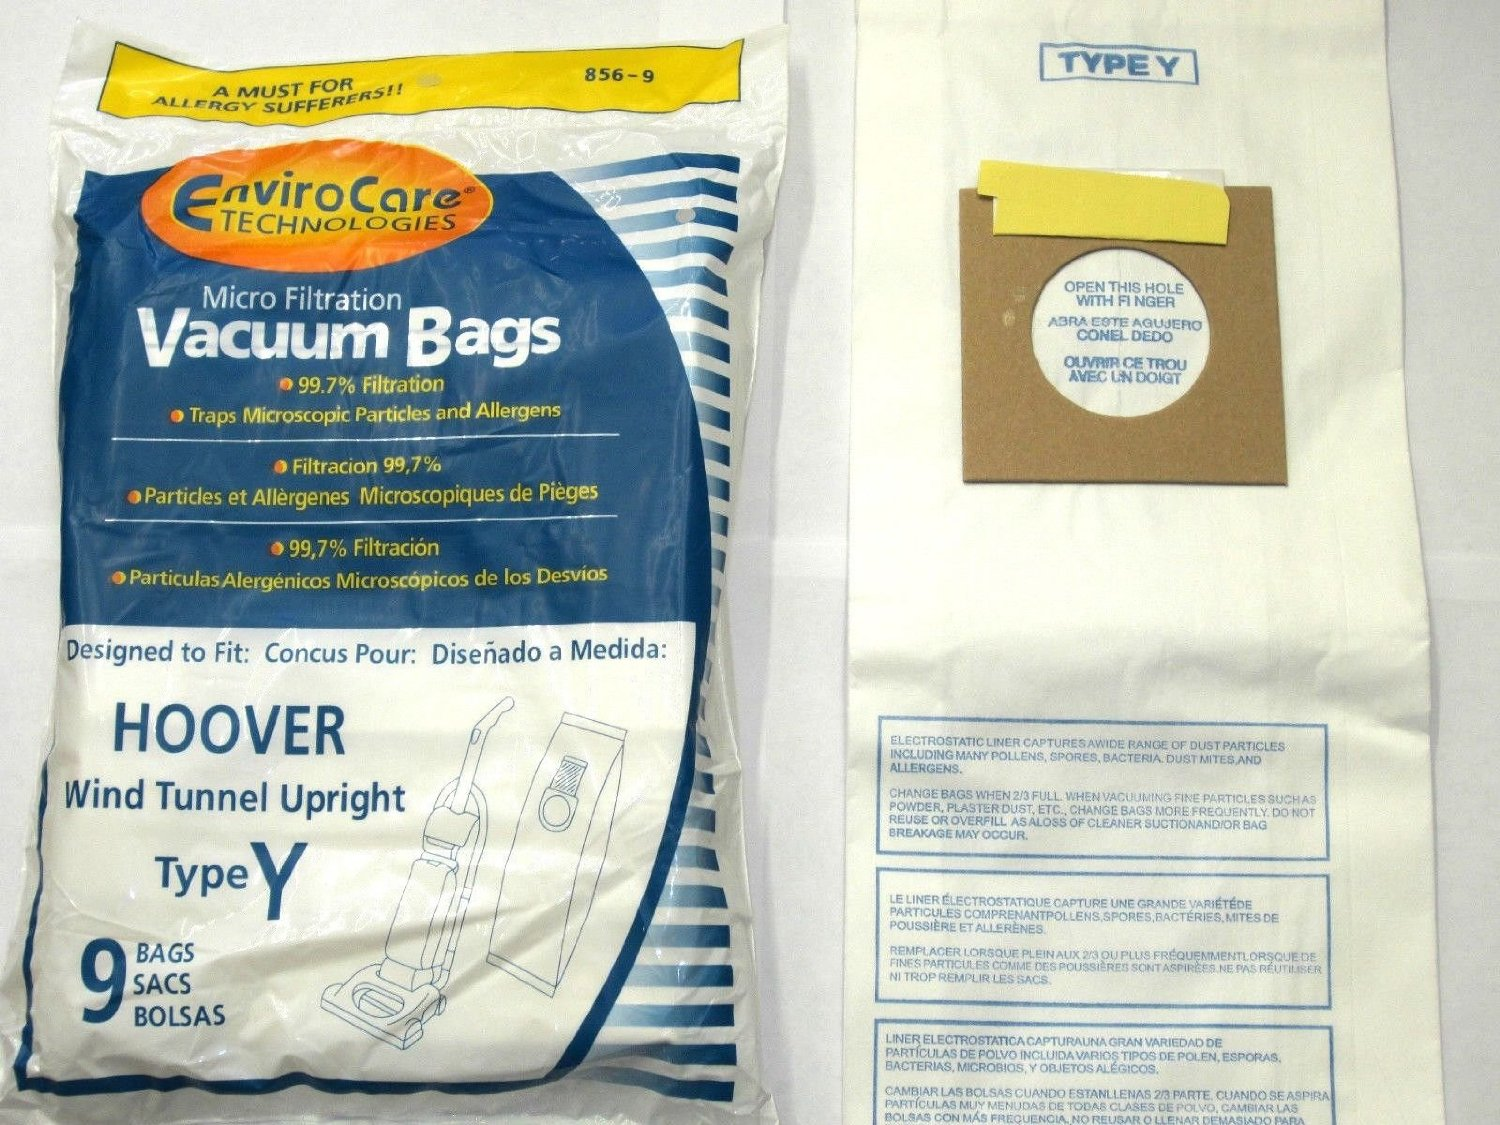 Envirocare Hoover Part#4010100Y - Type Y Vacuum Bag Replacement for Hoover WindTunnel Uprights and Hoover Vacuums Using Type Y or T at Sears.com